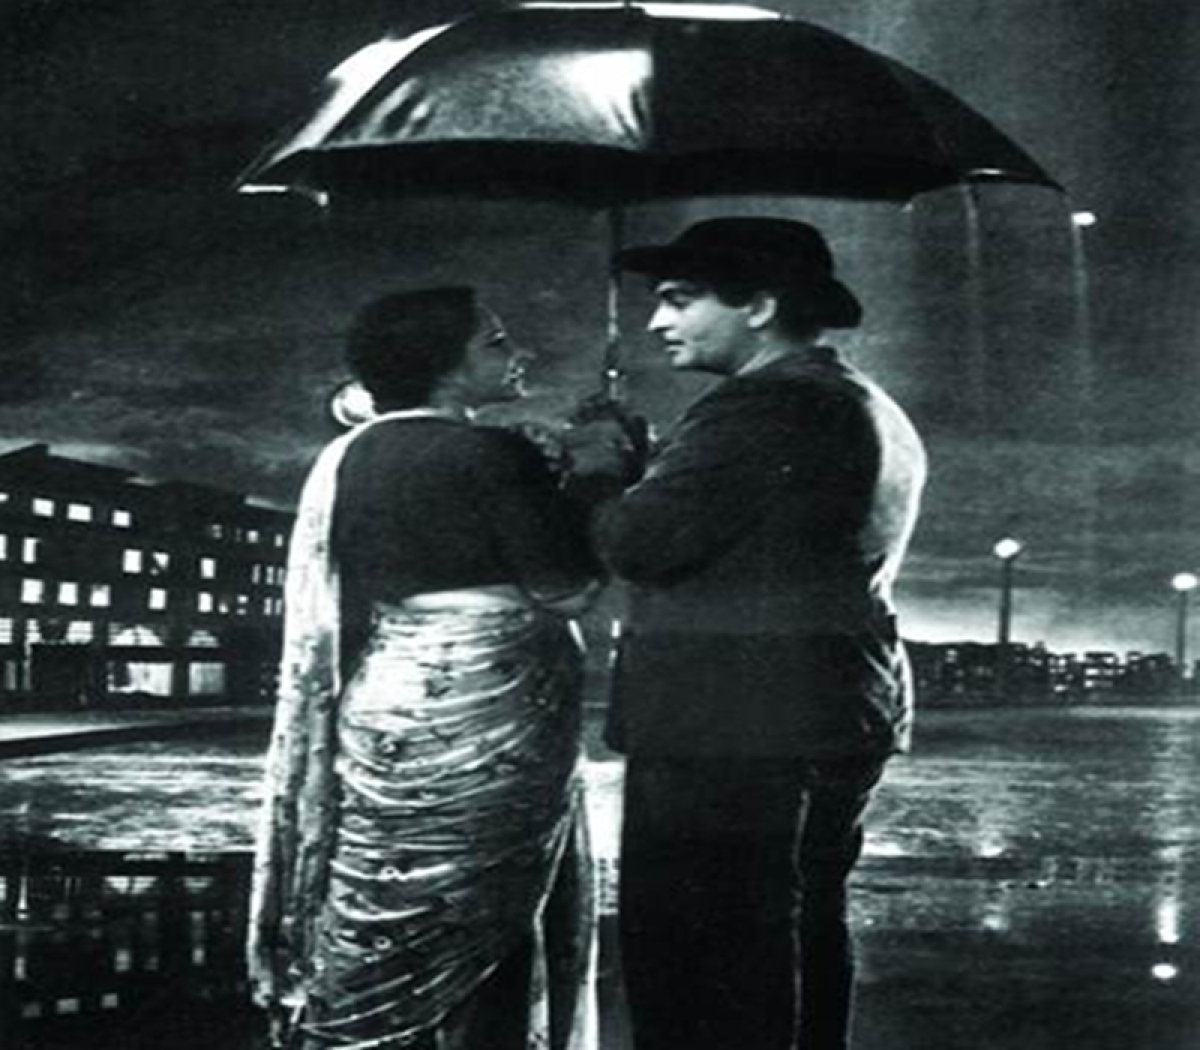 Mumbaikars, as you soak in the monsoon fever, listen to these Bollywood melodies